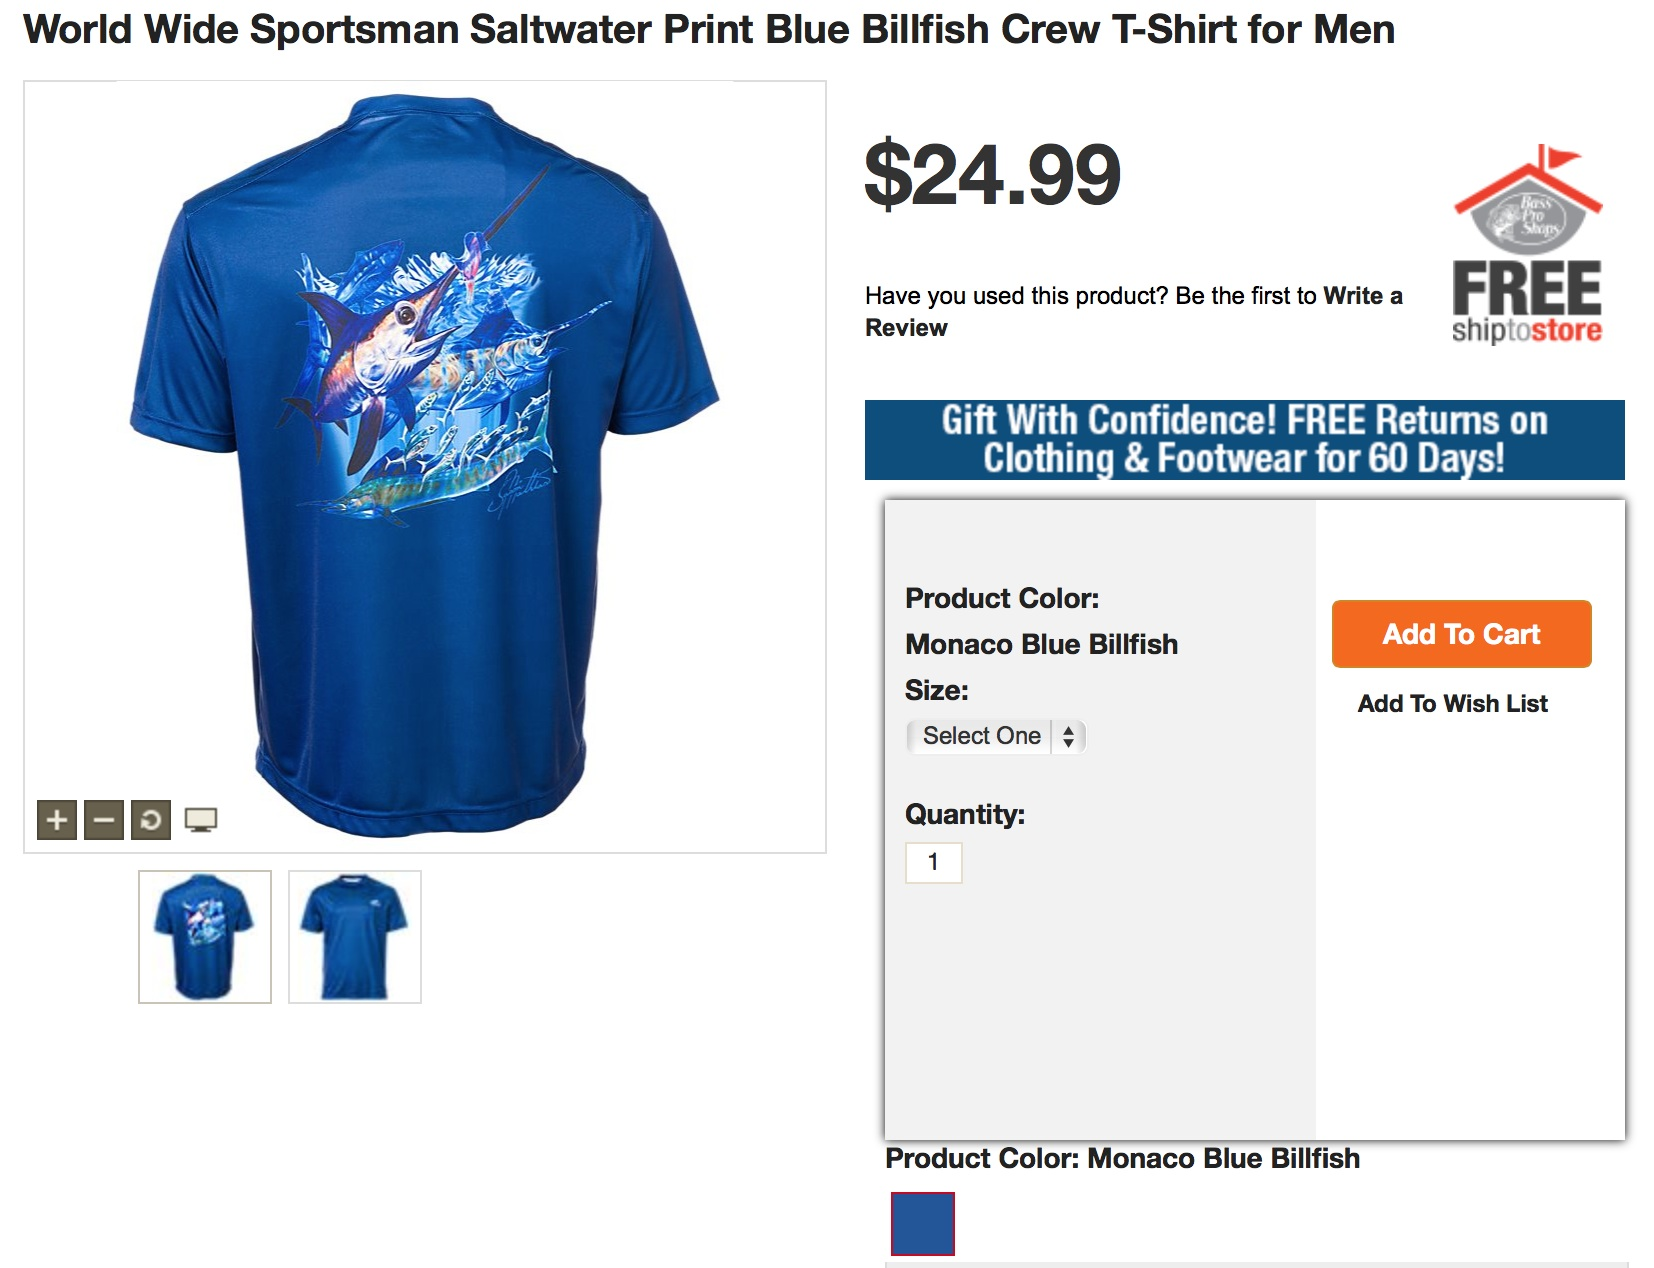 swordfish-world-wide-sportsman-shirt-jason-mathias.jpg